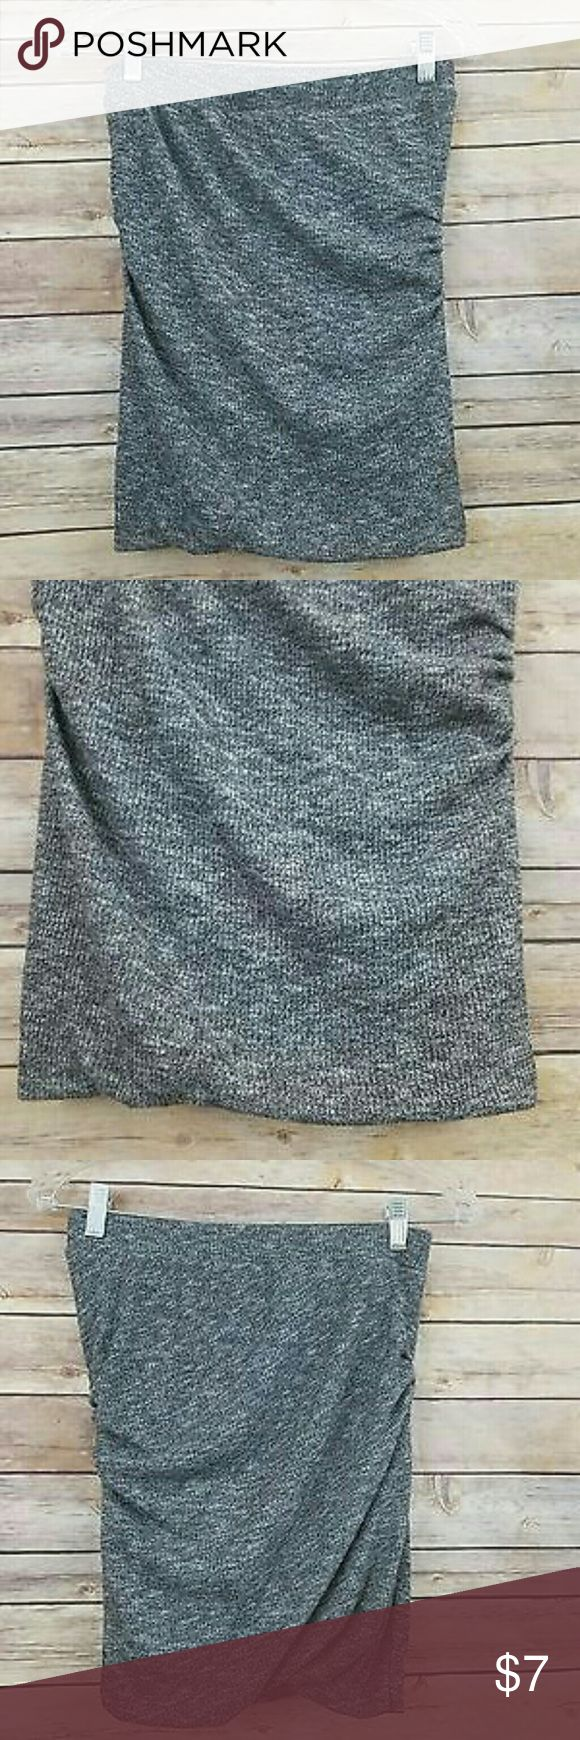 Zara Skirt M Gray draped stretch pencil fitted skirt. Comfy and trendy. Zara Skirts Pencil